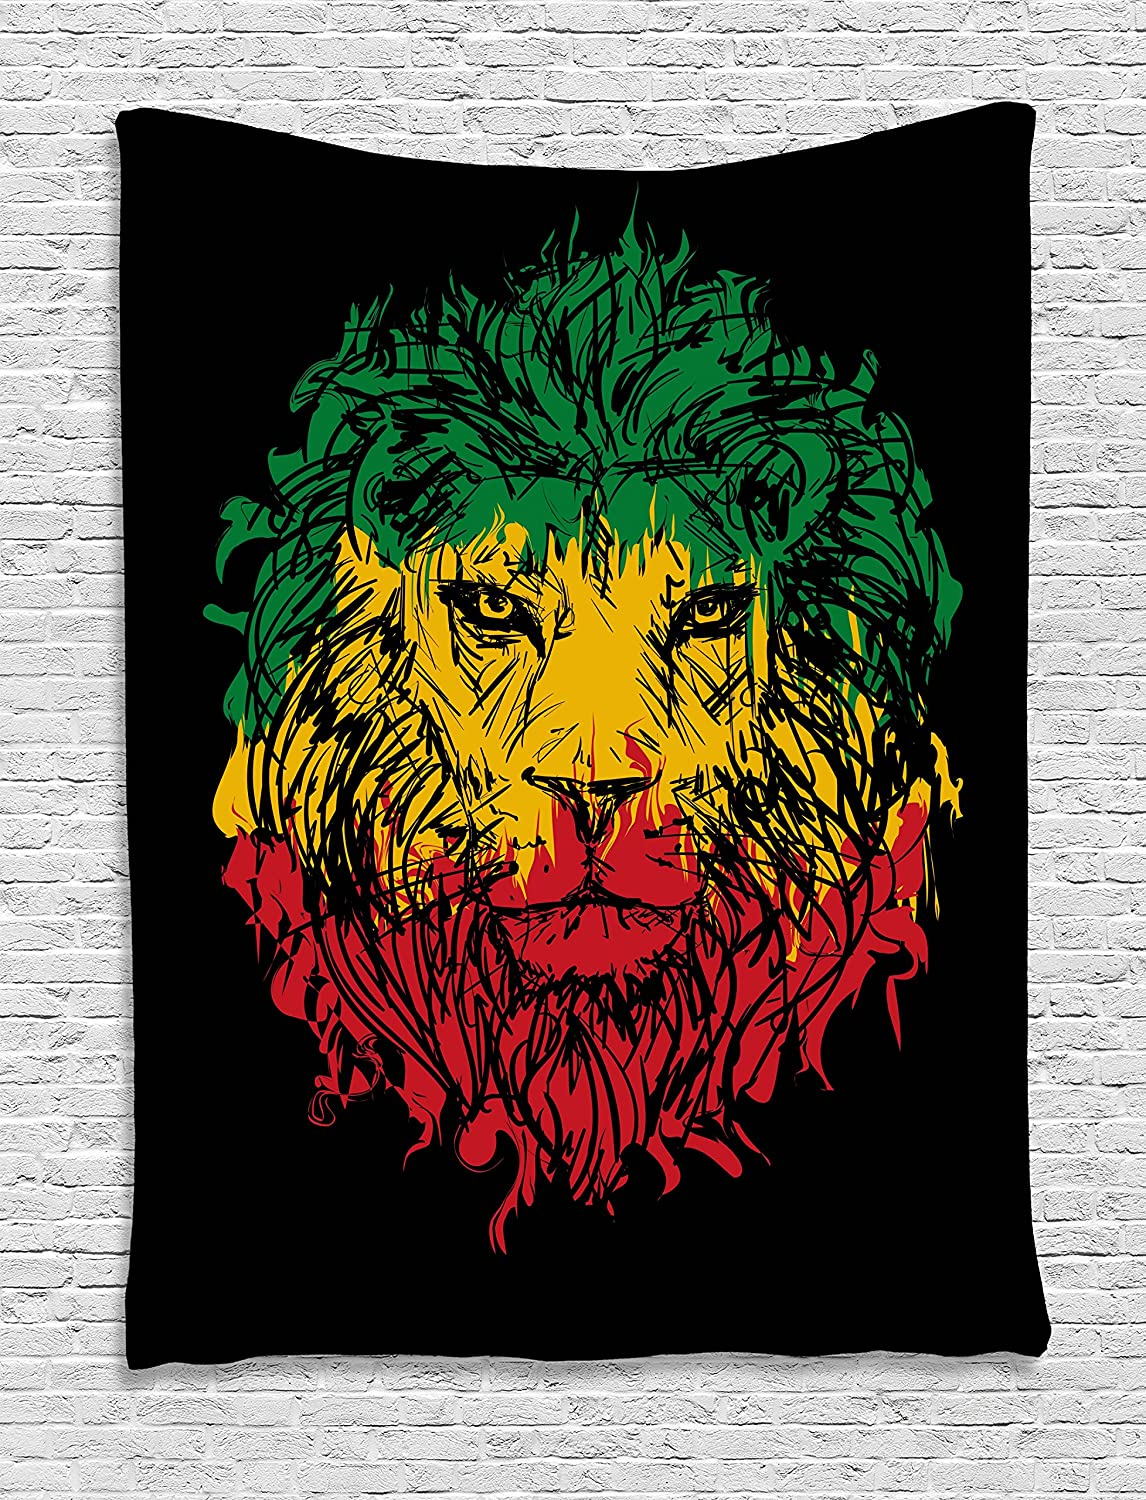 "Ambesonne Rasta Tapestry, Ethiopian Flag Colors on Grunge Sketchy Lion Head with Black Backdrop, Wall Hanging for Bedroom Living Room Dorm Decor, 40"" X 60"", Lime Green"